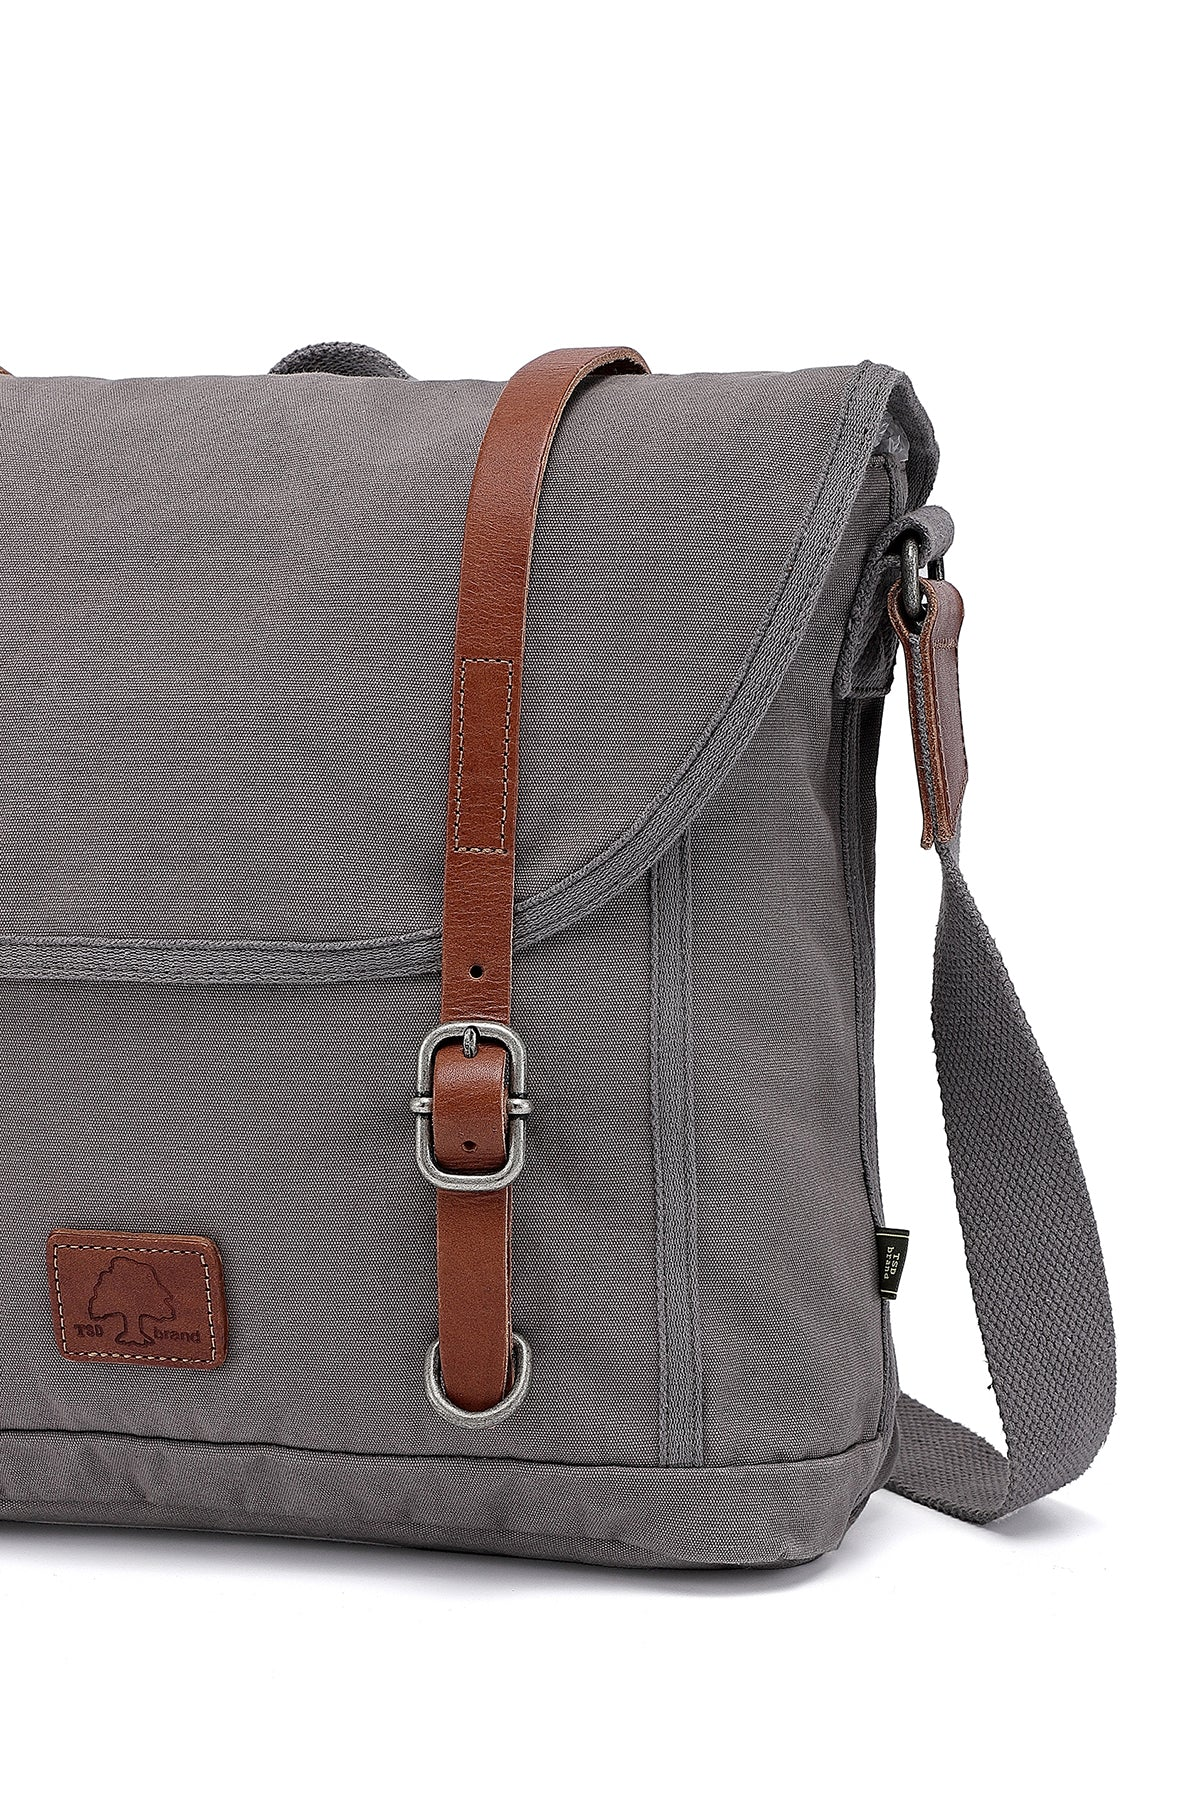 Forest Military-Inspired Canvas Messenger Bag